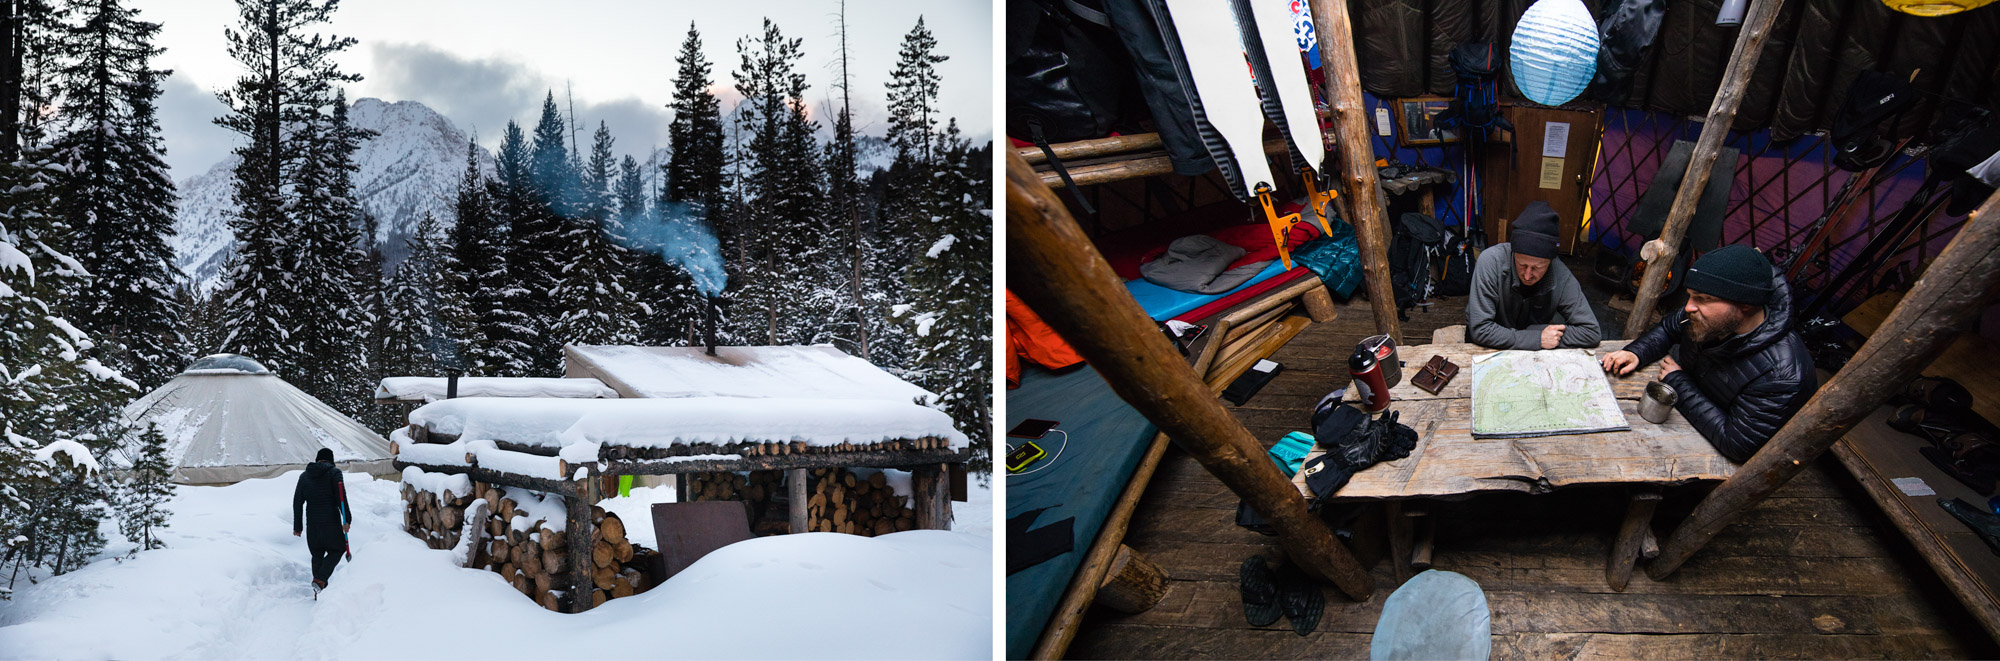 winter-active-lifestyle-yurt-idaho-backcountry-makr-carter-forrest-shearer